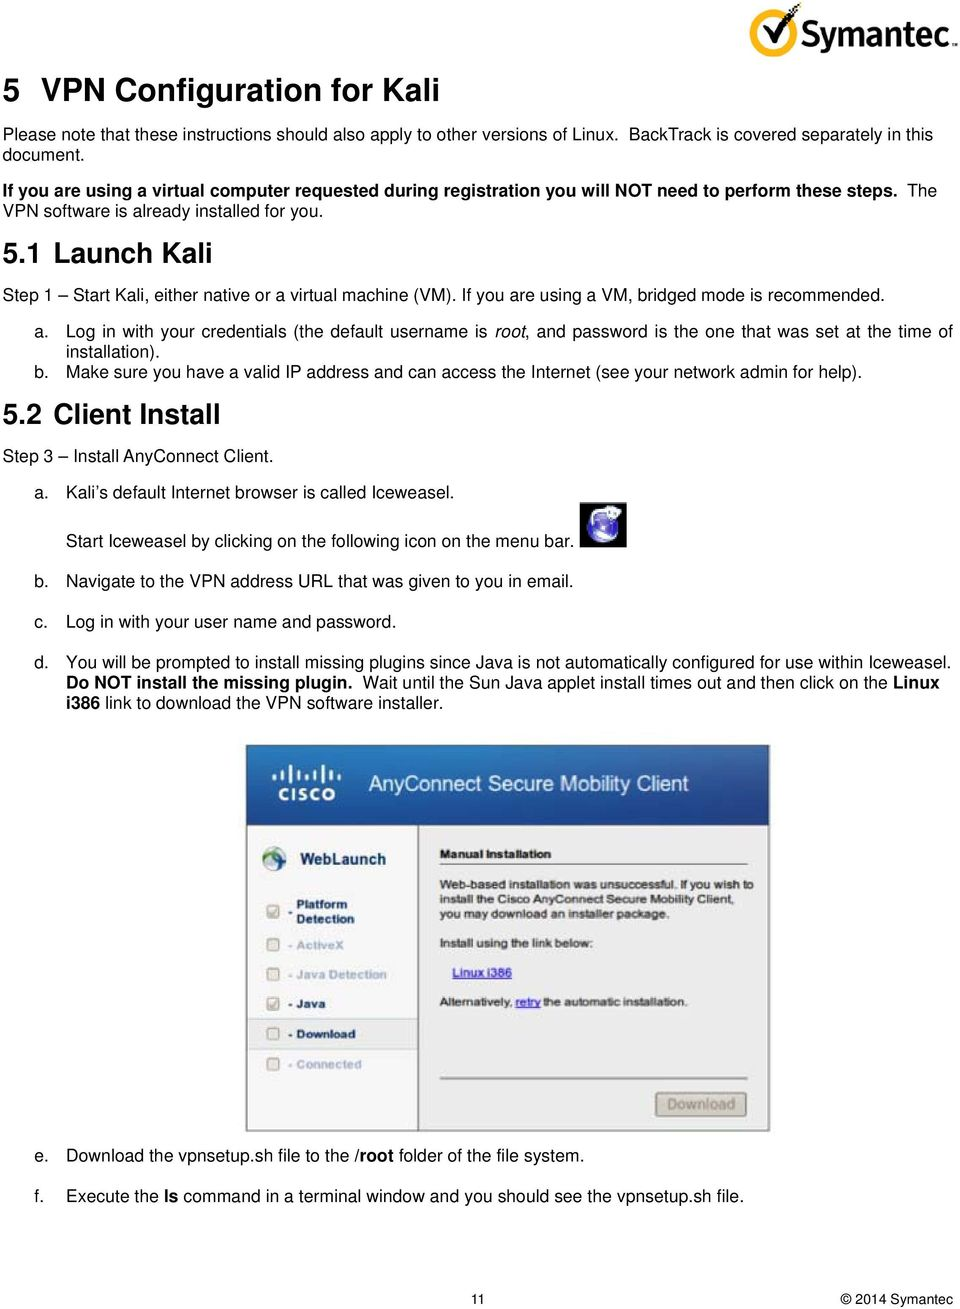 1 Launch Kali Step 1 Start Kali, either native or a virtual machine (VM). If you are using a VM, bridged mode is recommended. a. Log in with your credentials (the default username is root, and password is the one that was set at the time of installation).